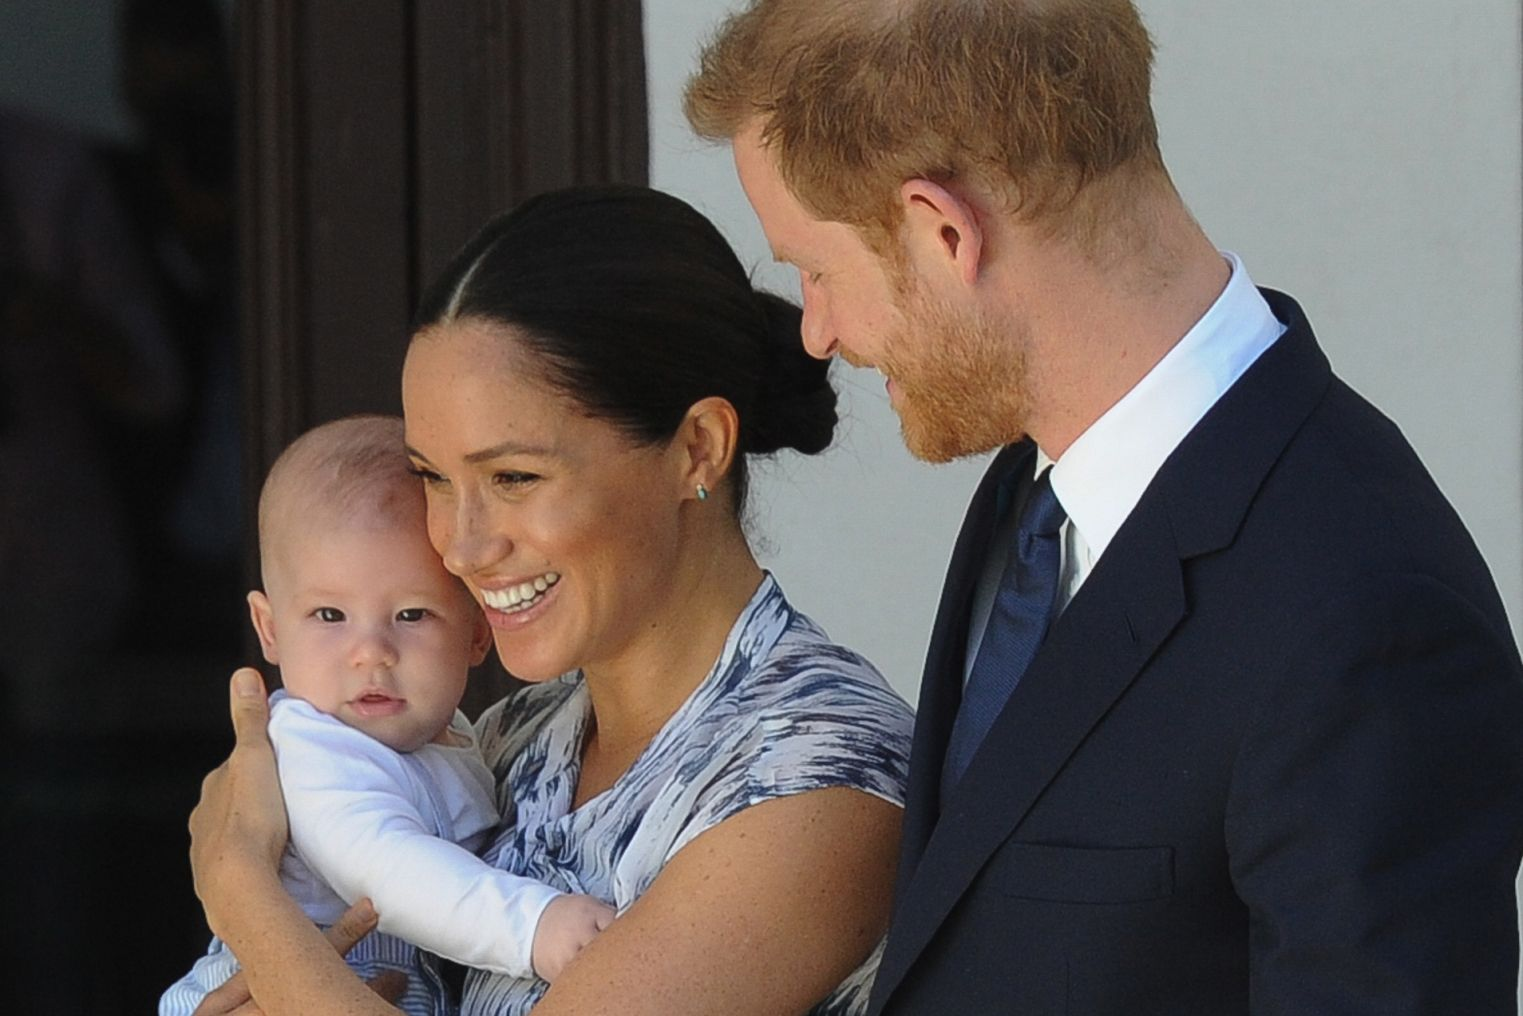 Britain's Duke and Duchess of Sussex, Prince Harry and his wife Meghan hold their baby son Archie as they meet with Archbishop Desmond Tutu and his wife (unseen) at the Tutu Legacy Foundation  in Cape Town on September 25, 2019. - The British royal couple are on a 10-day tour of southern Africa -- their first official visit as a family since their son Archie was born in May. (Photo by HENK KRUGER / POOL / AFP)